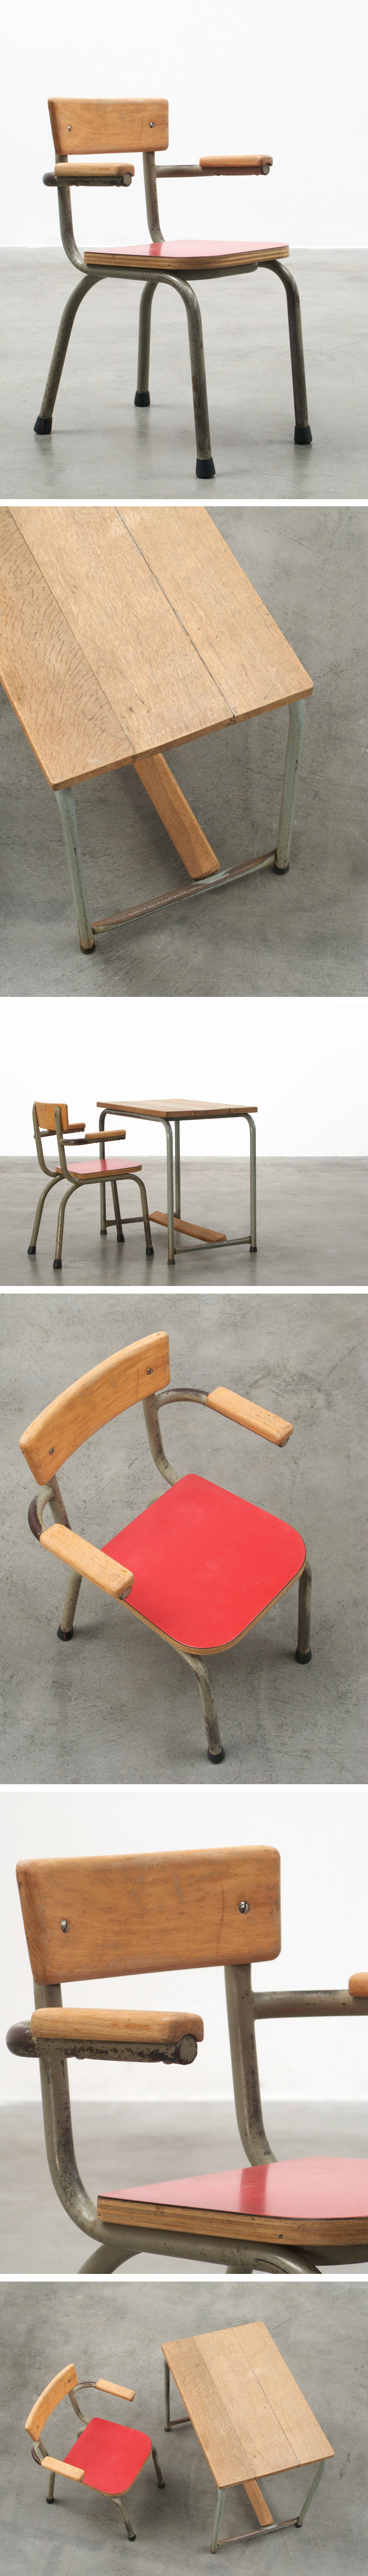 Industrial school desk and chair for children Tubax Large